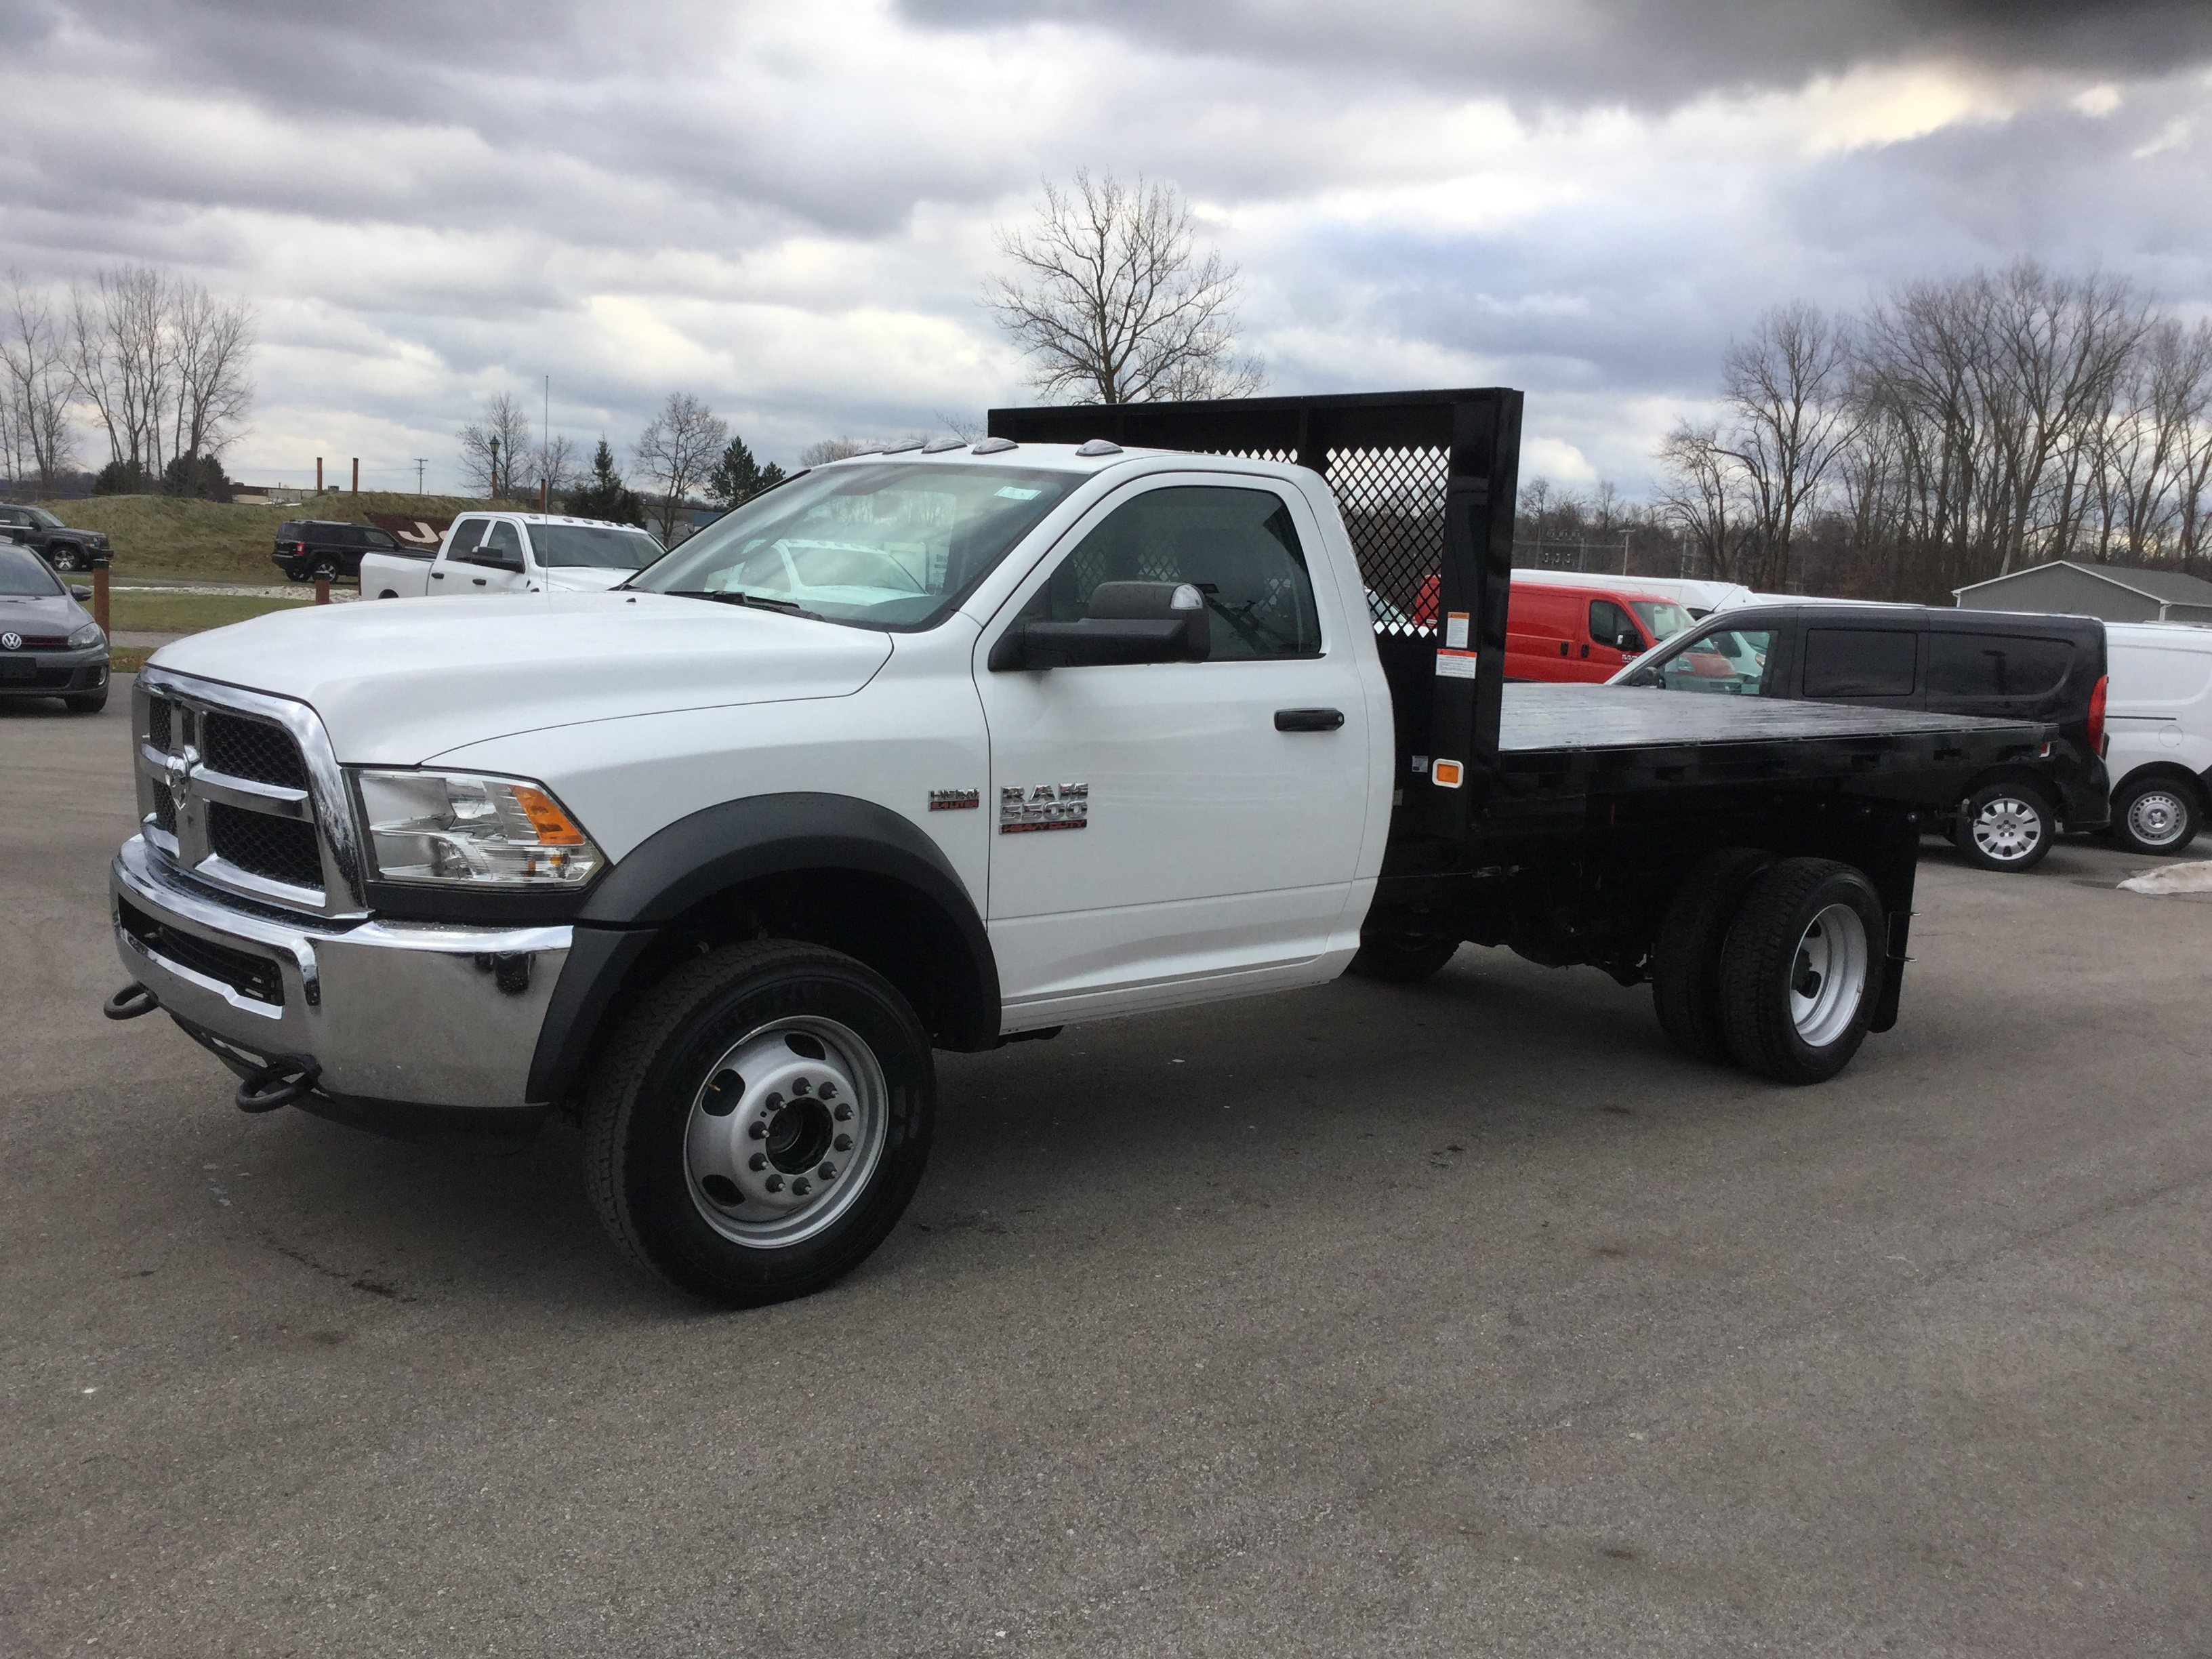 2017 Ram 5500 Regular Cab DRW 4x4, Knapheide Platform Body #17235 - photo 3